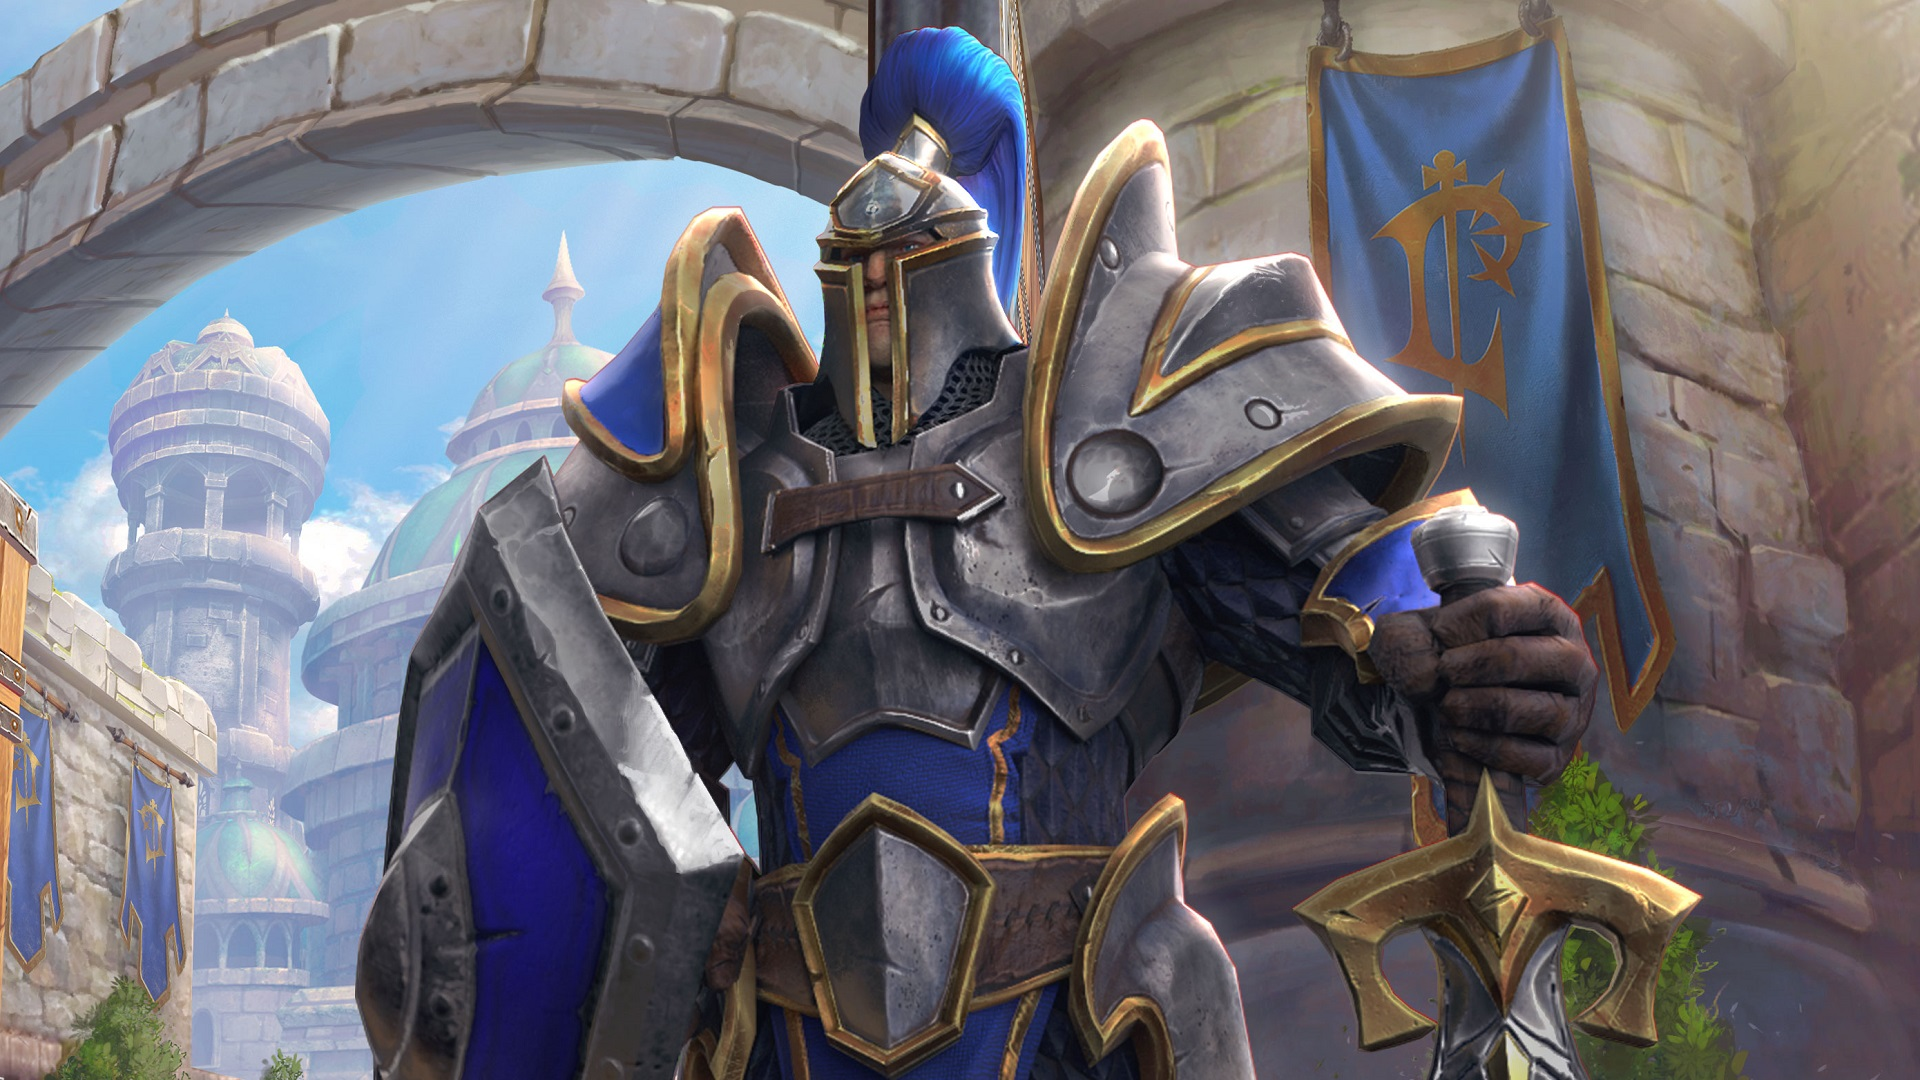 Blizzard Says Warcraft 3 Reforged Launch Has Made This Week Hard